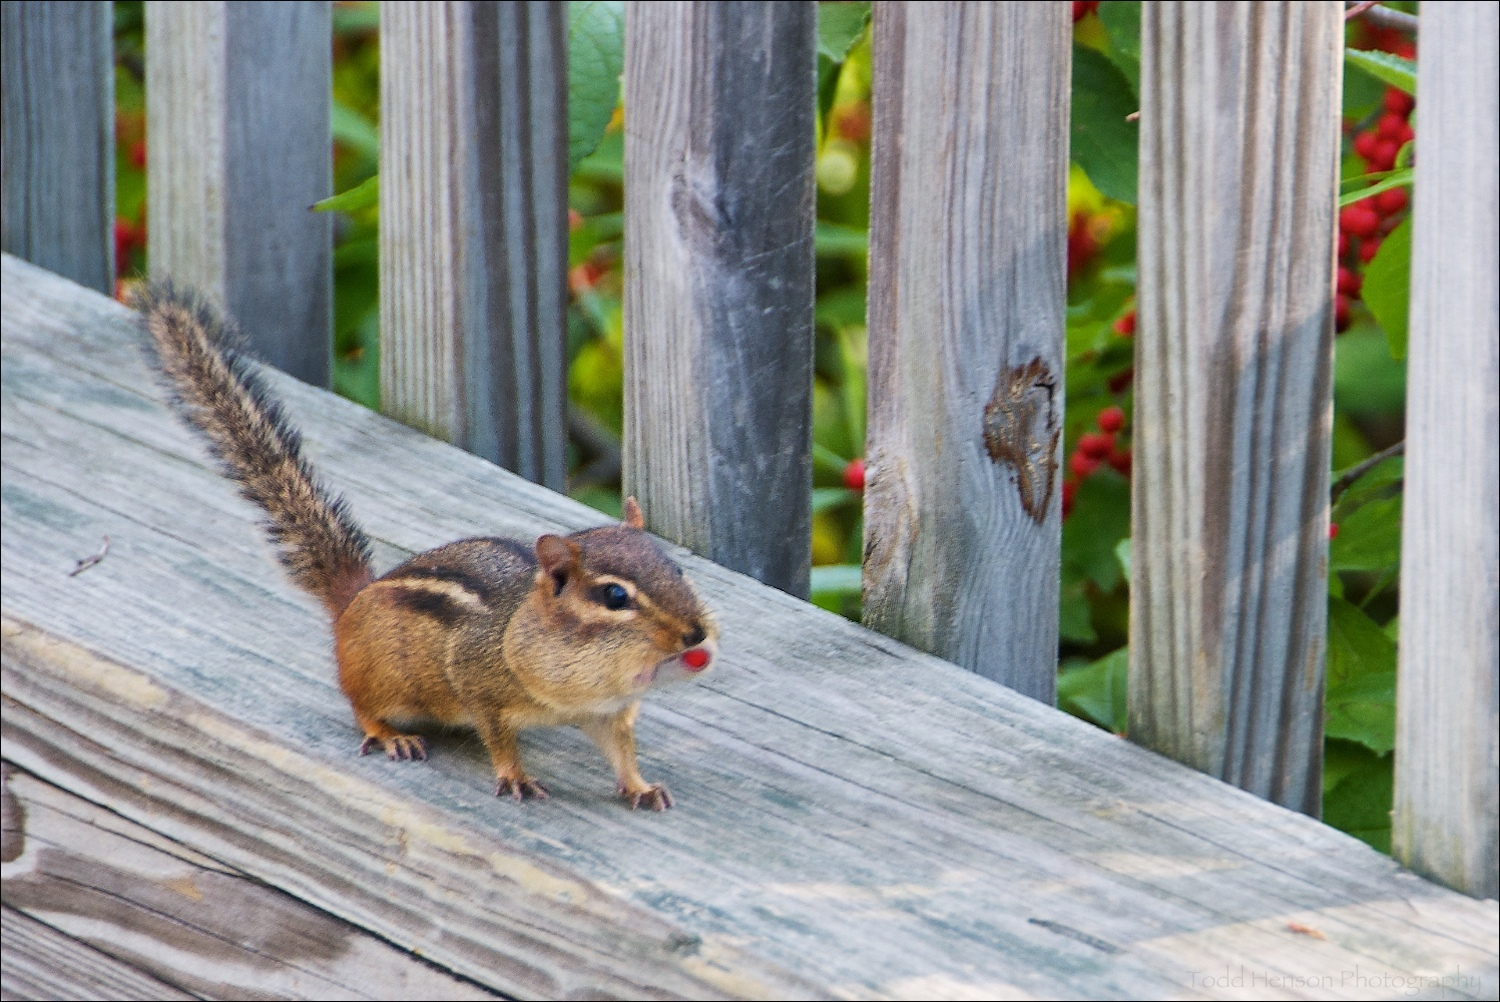 Low quality photo of Eastern Chipmunk, but notice its cheeks are full of the red berries seen in the background. Found in nature/garden park.